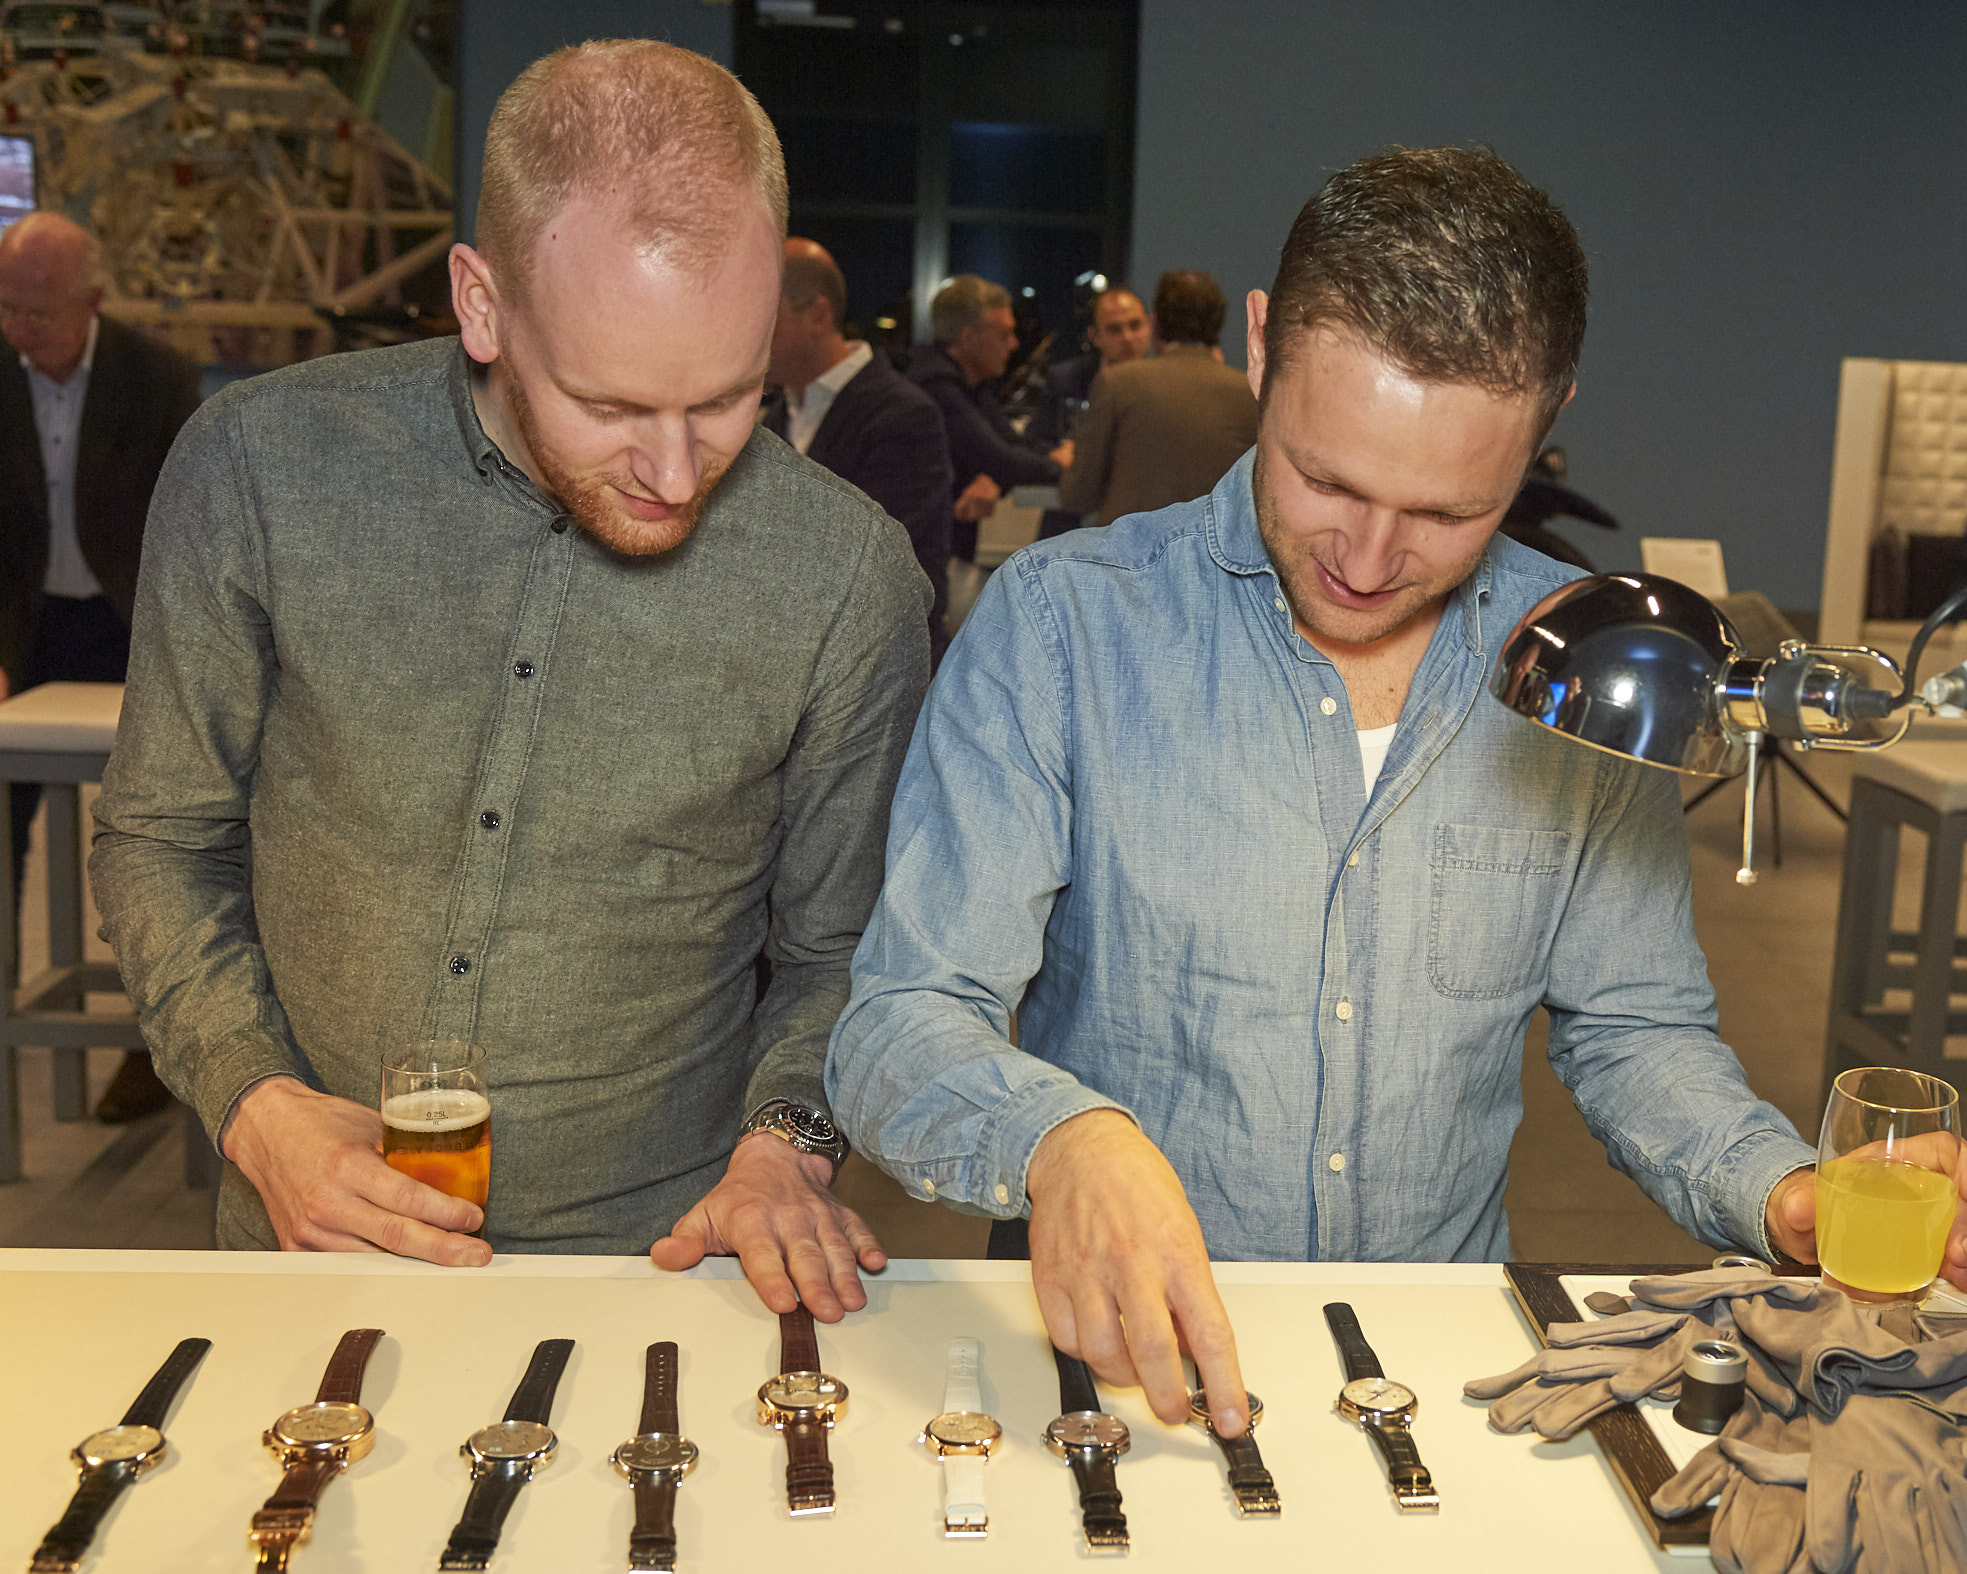 A. lange and Sohne X Monochrome-Watches event recap - 73